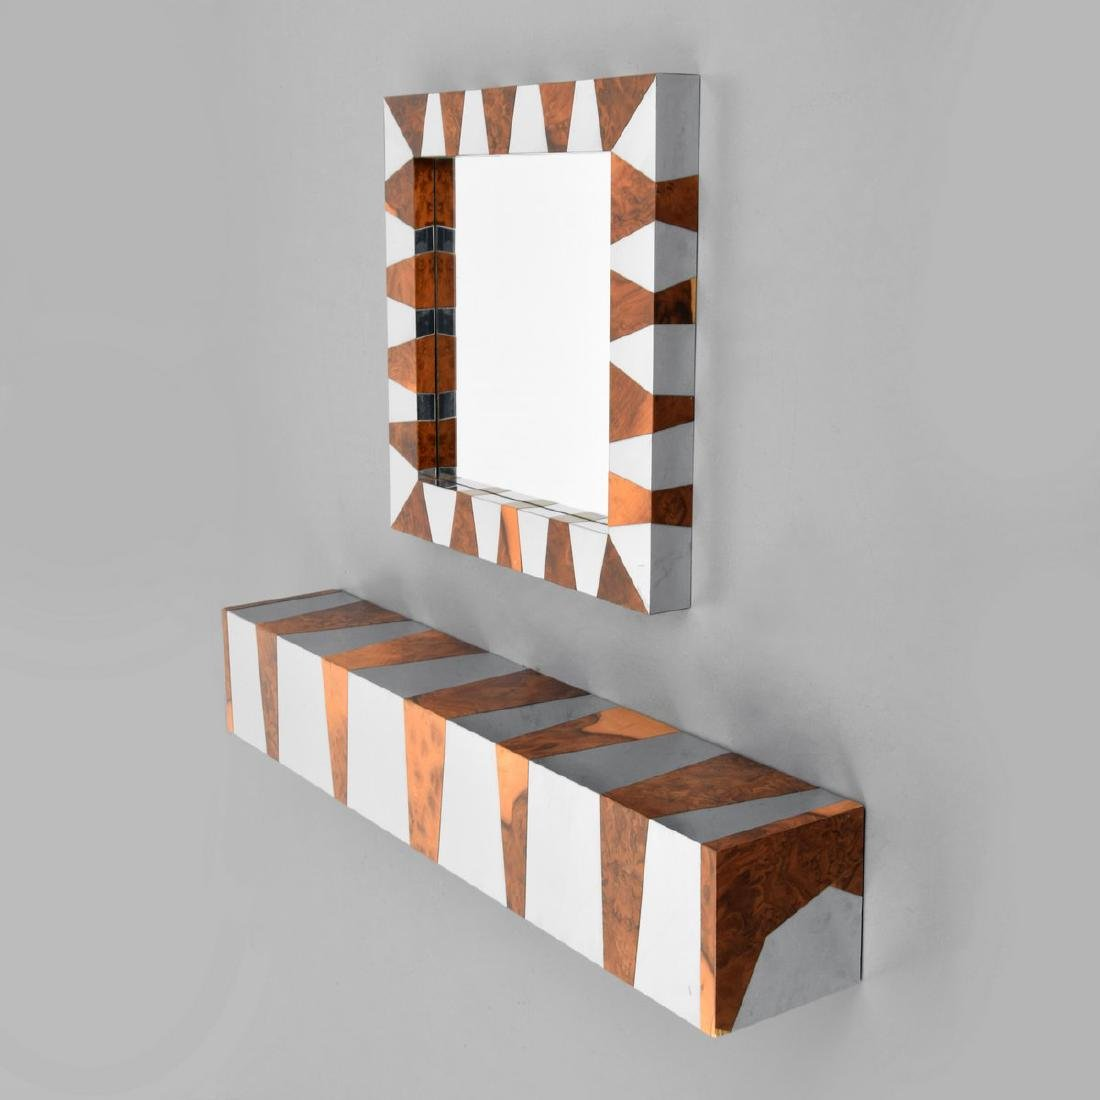 Console Table & Mirror, Manner of Paul Evans